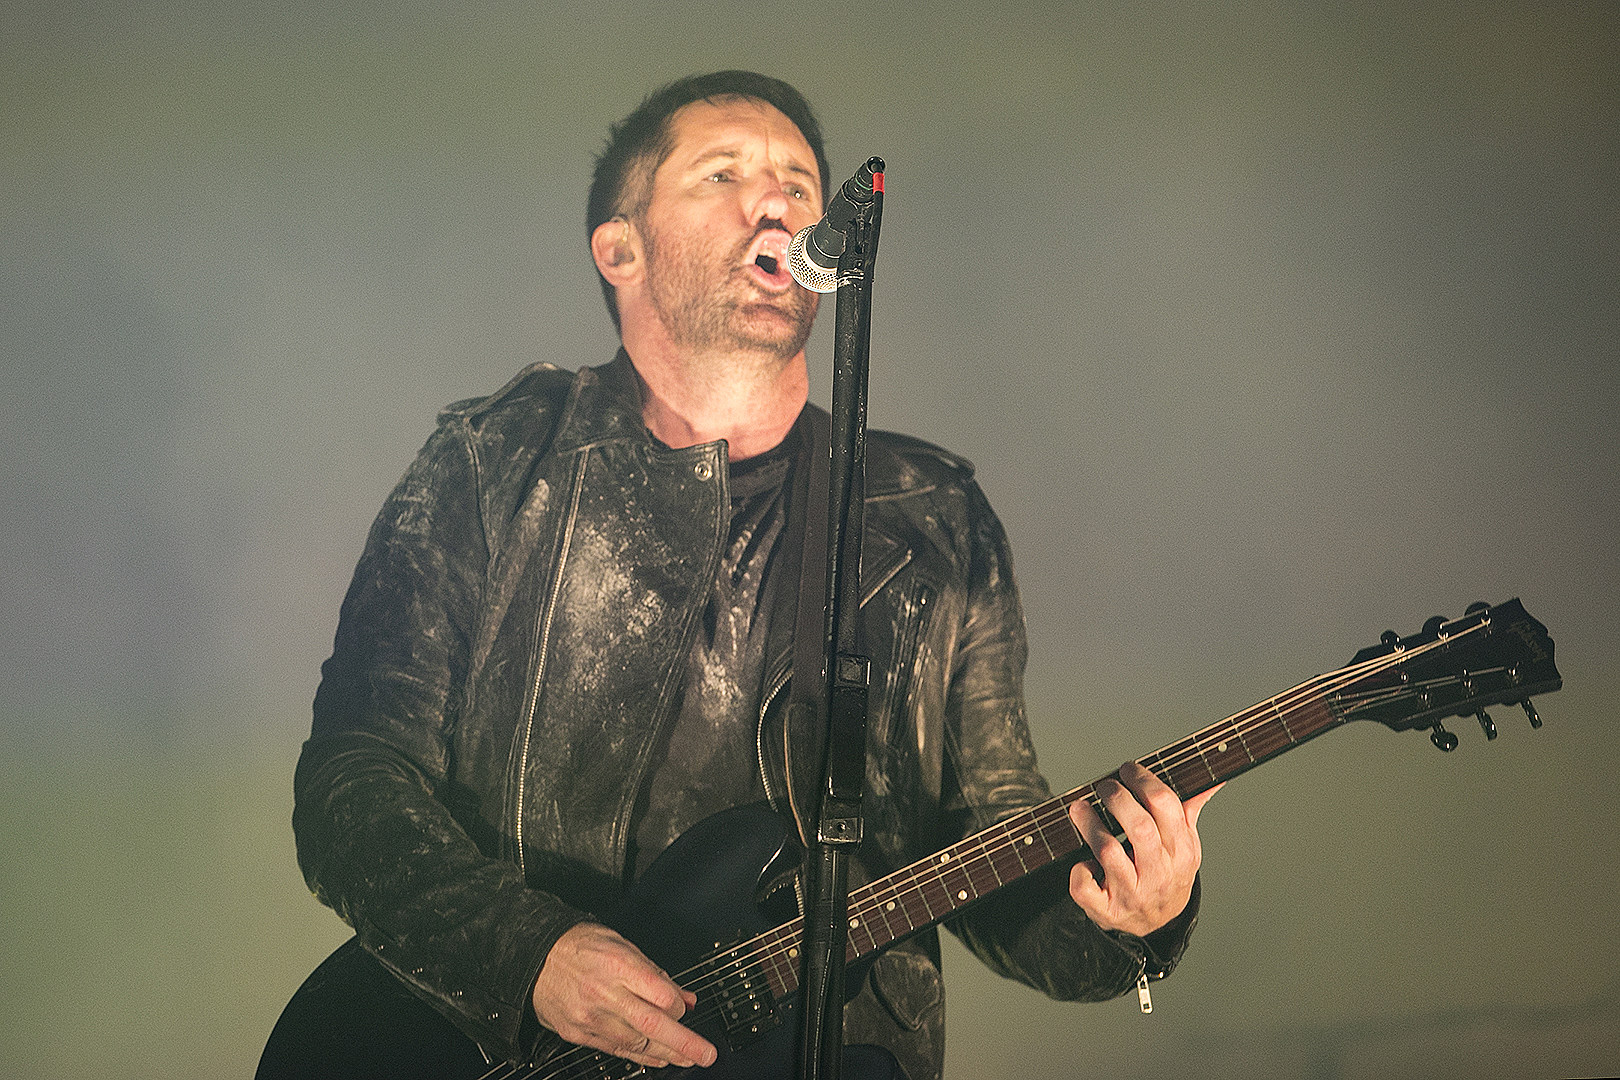 Trent Reznor to Disgruntled Fan: 'Suck My Entire C–k'